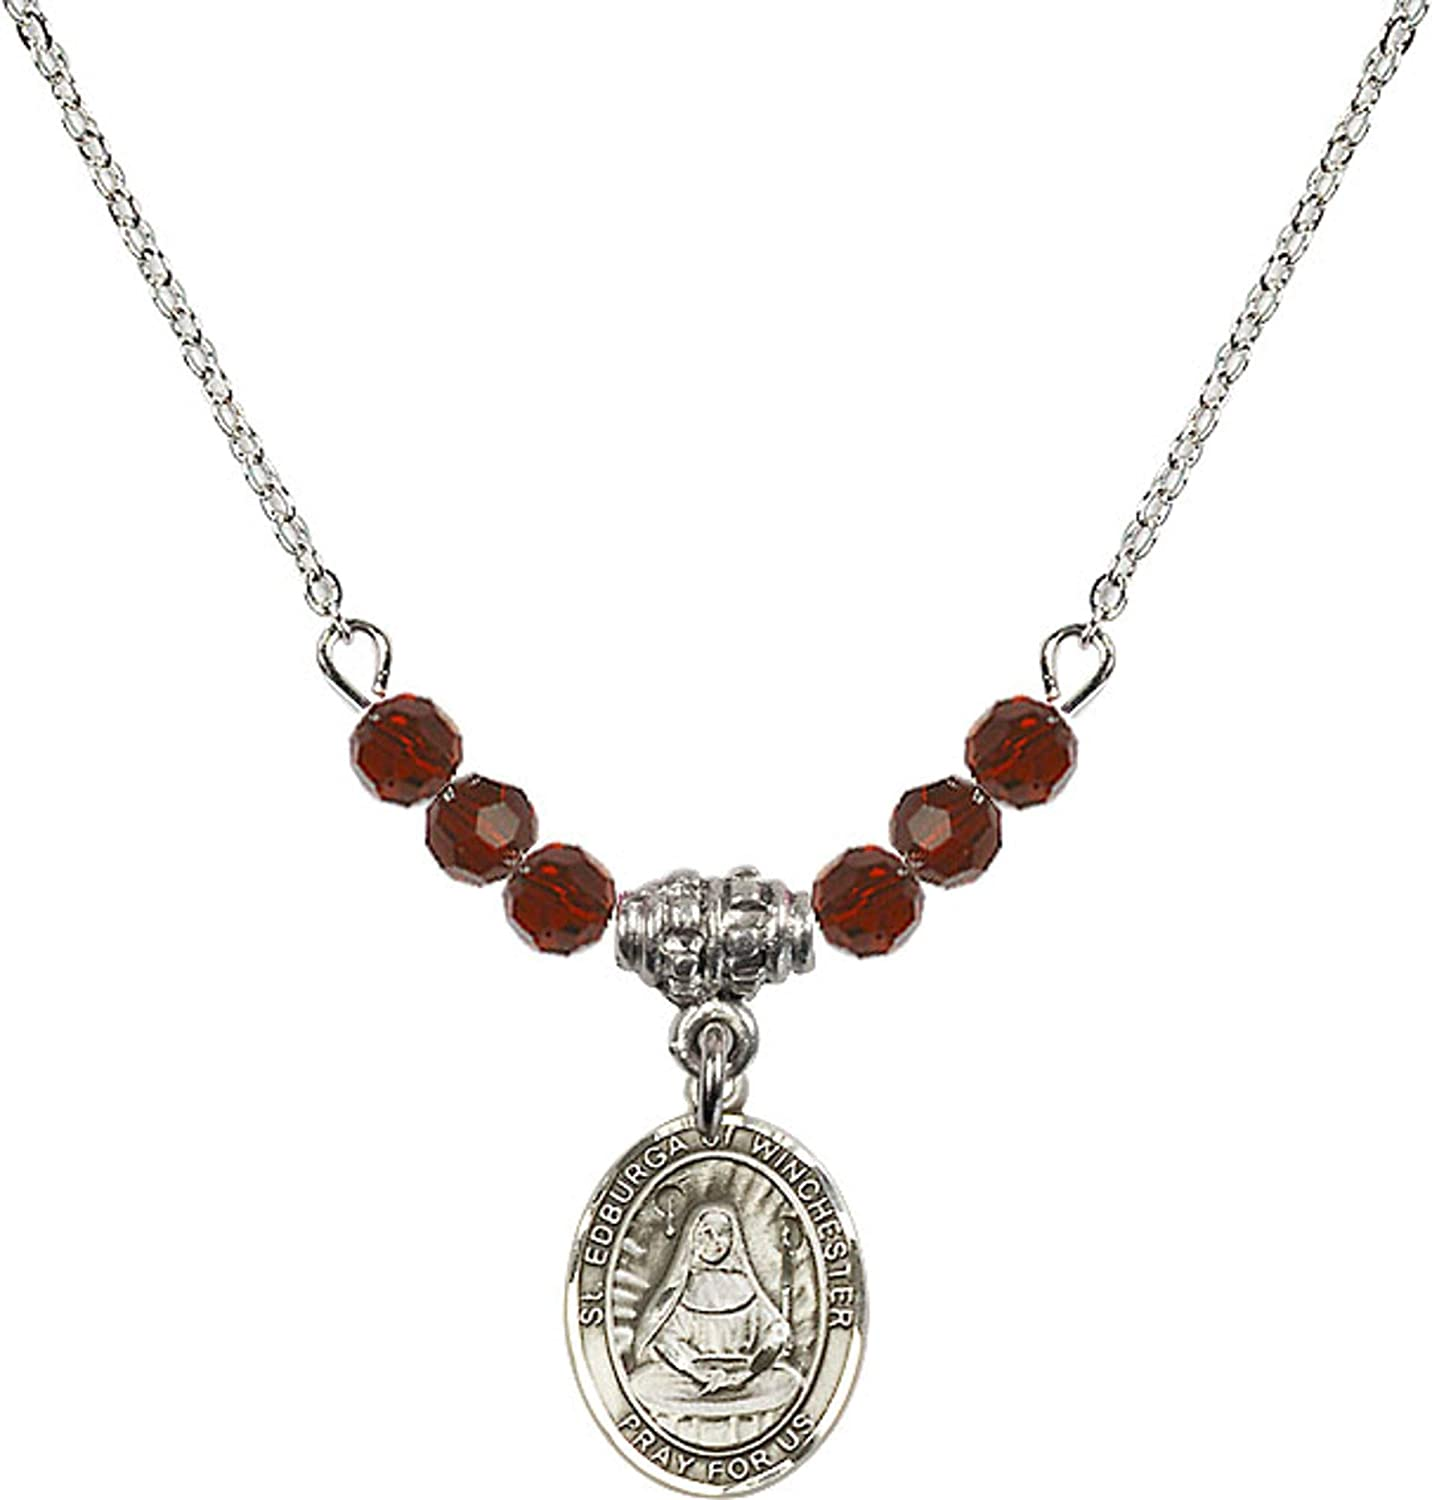 Bonyak Jewelry 18 Inch Rhodium Plated Necklace w// 4mm Red January Birth Month Stone Beads and Saint Edburga of Winchester Charm